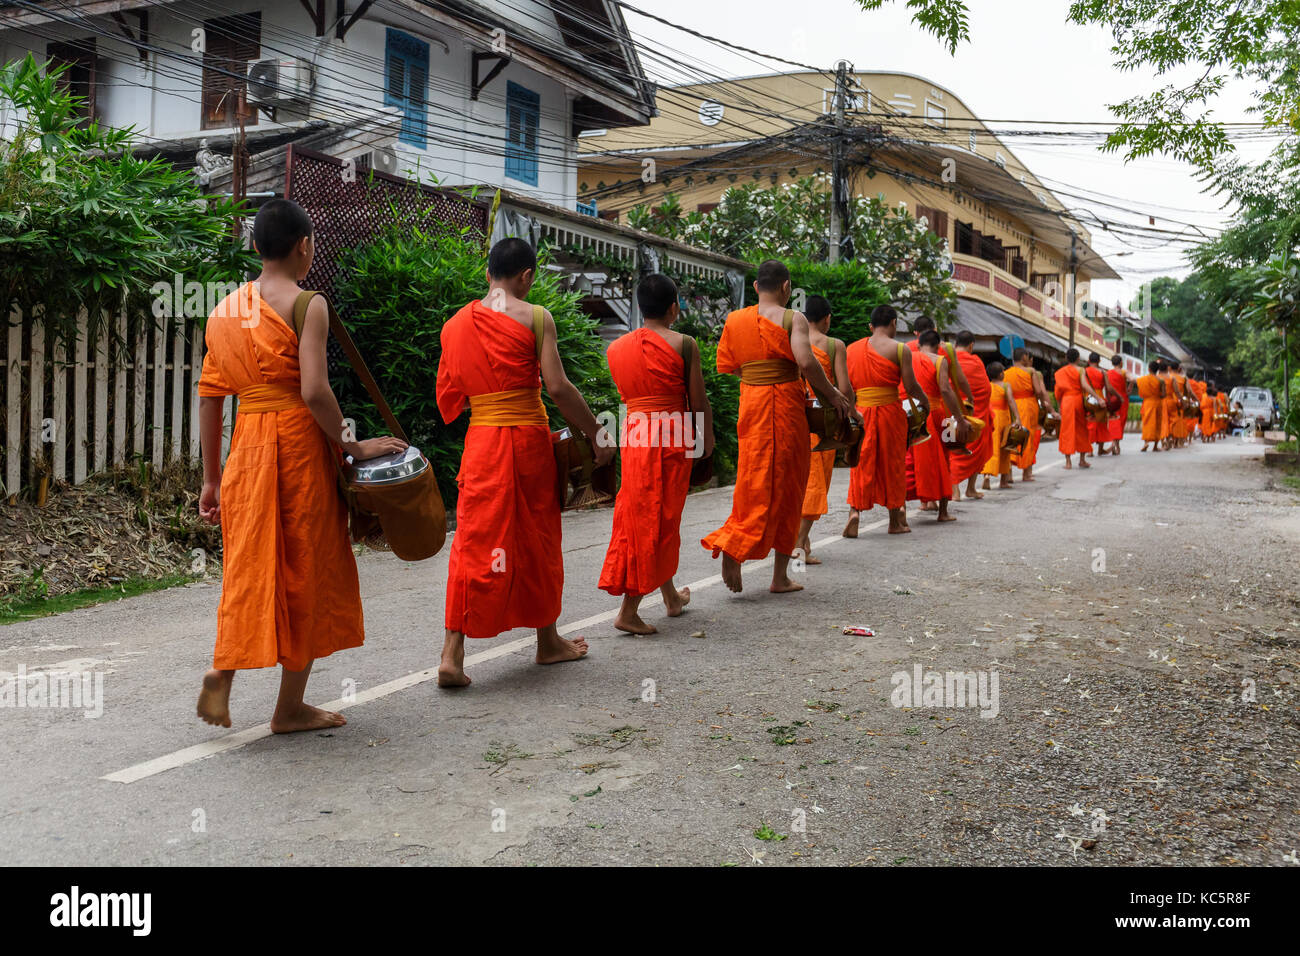 Buddhist monks in a line in Luang Prabang, Laos - Stock Image